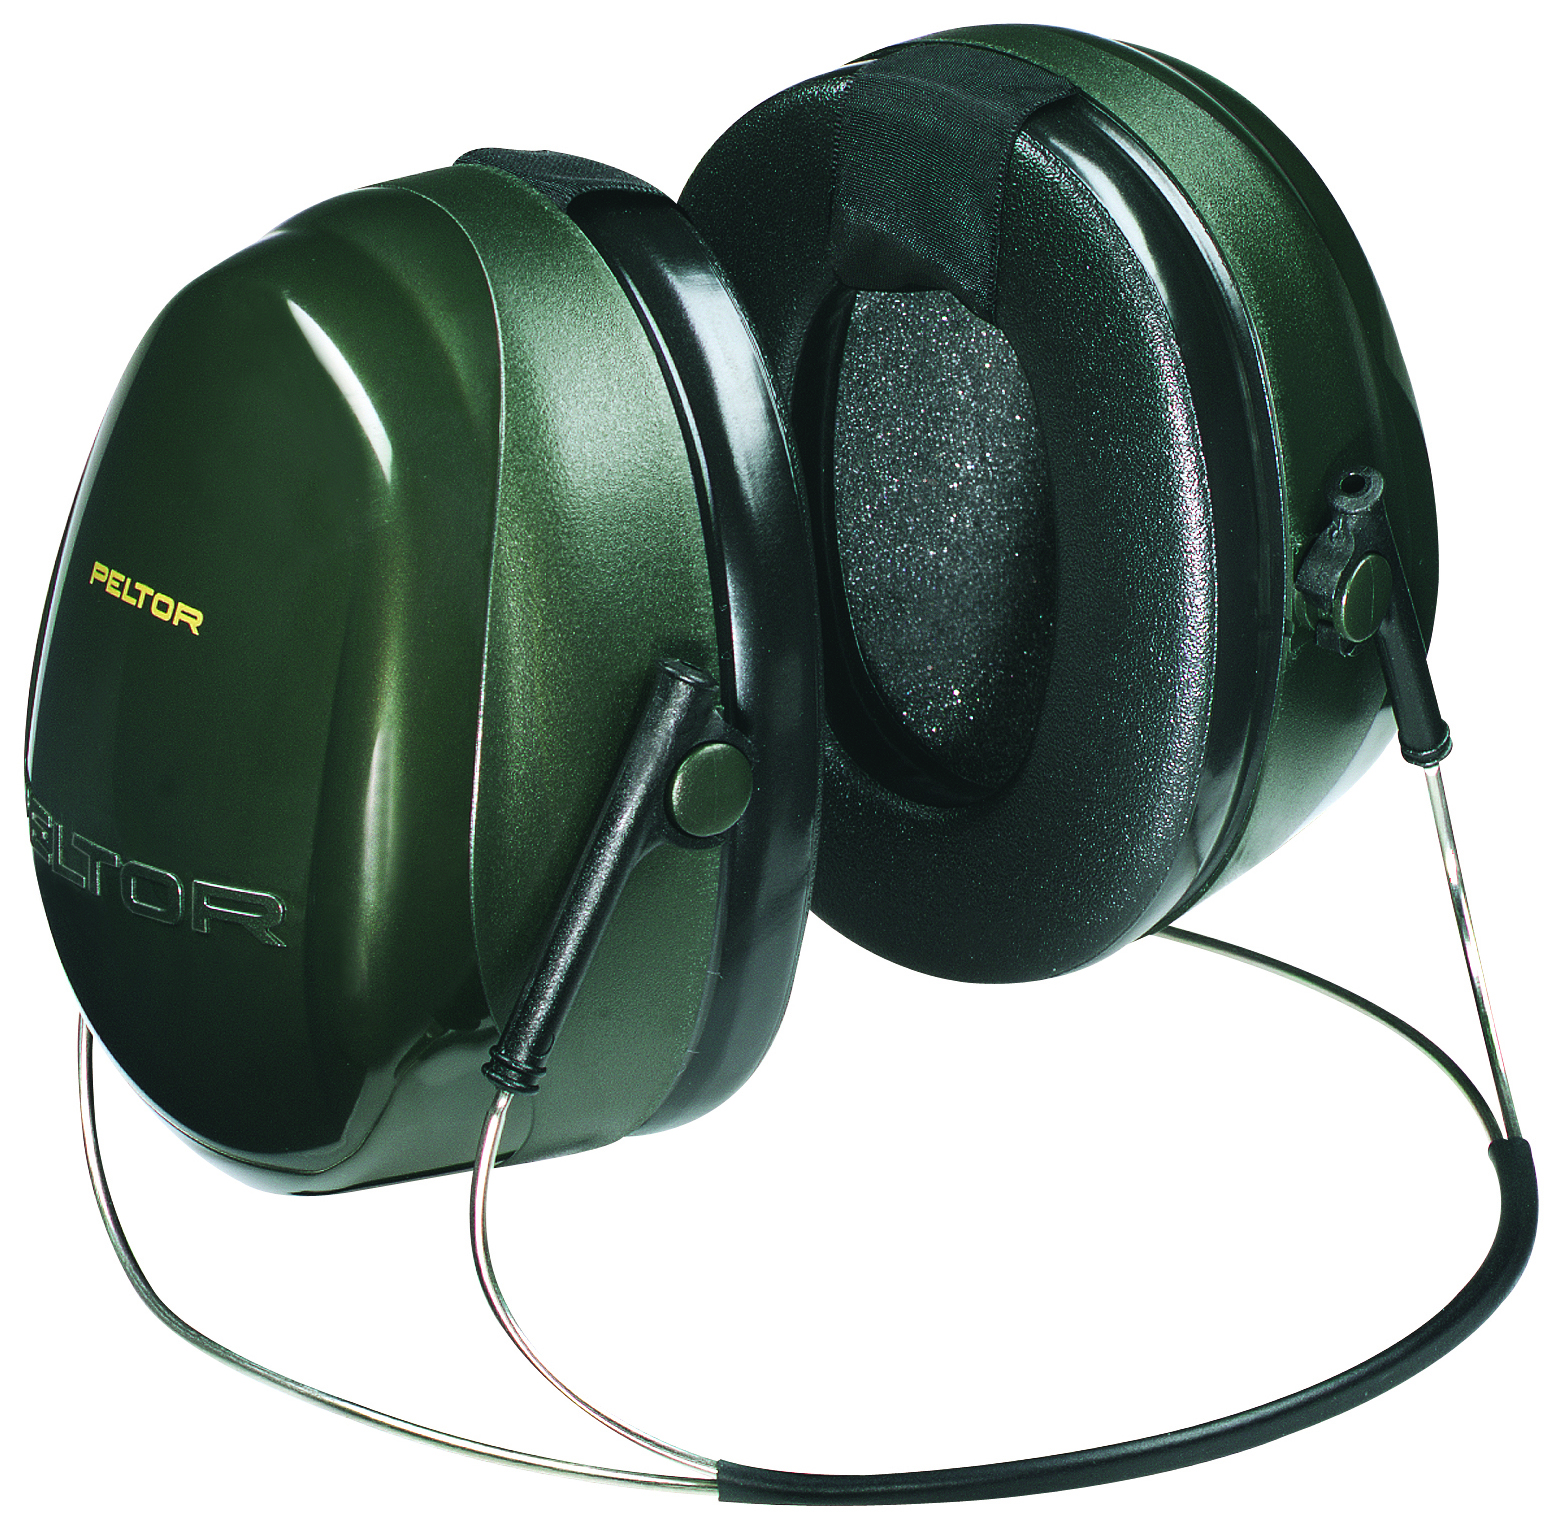 H7B - 3M™ Peltor™ Optime™ 101 Series Earmuffs-(NRR)* 26 dB, Behind-the-HEAd-----UOM: 1/EA